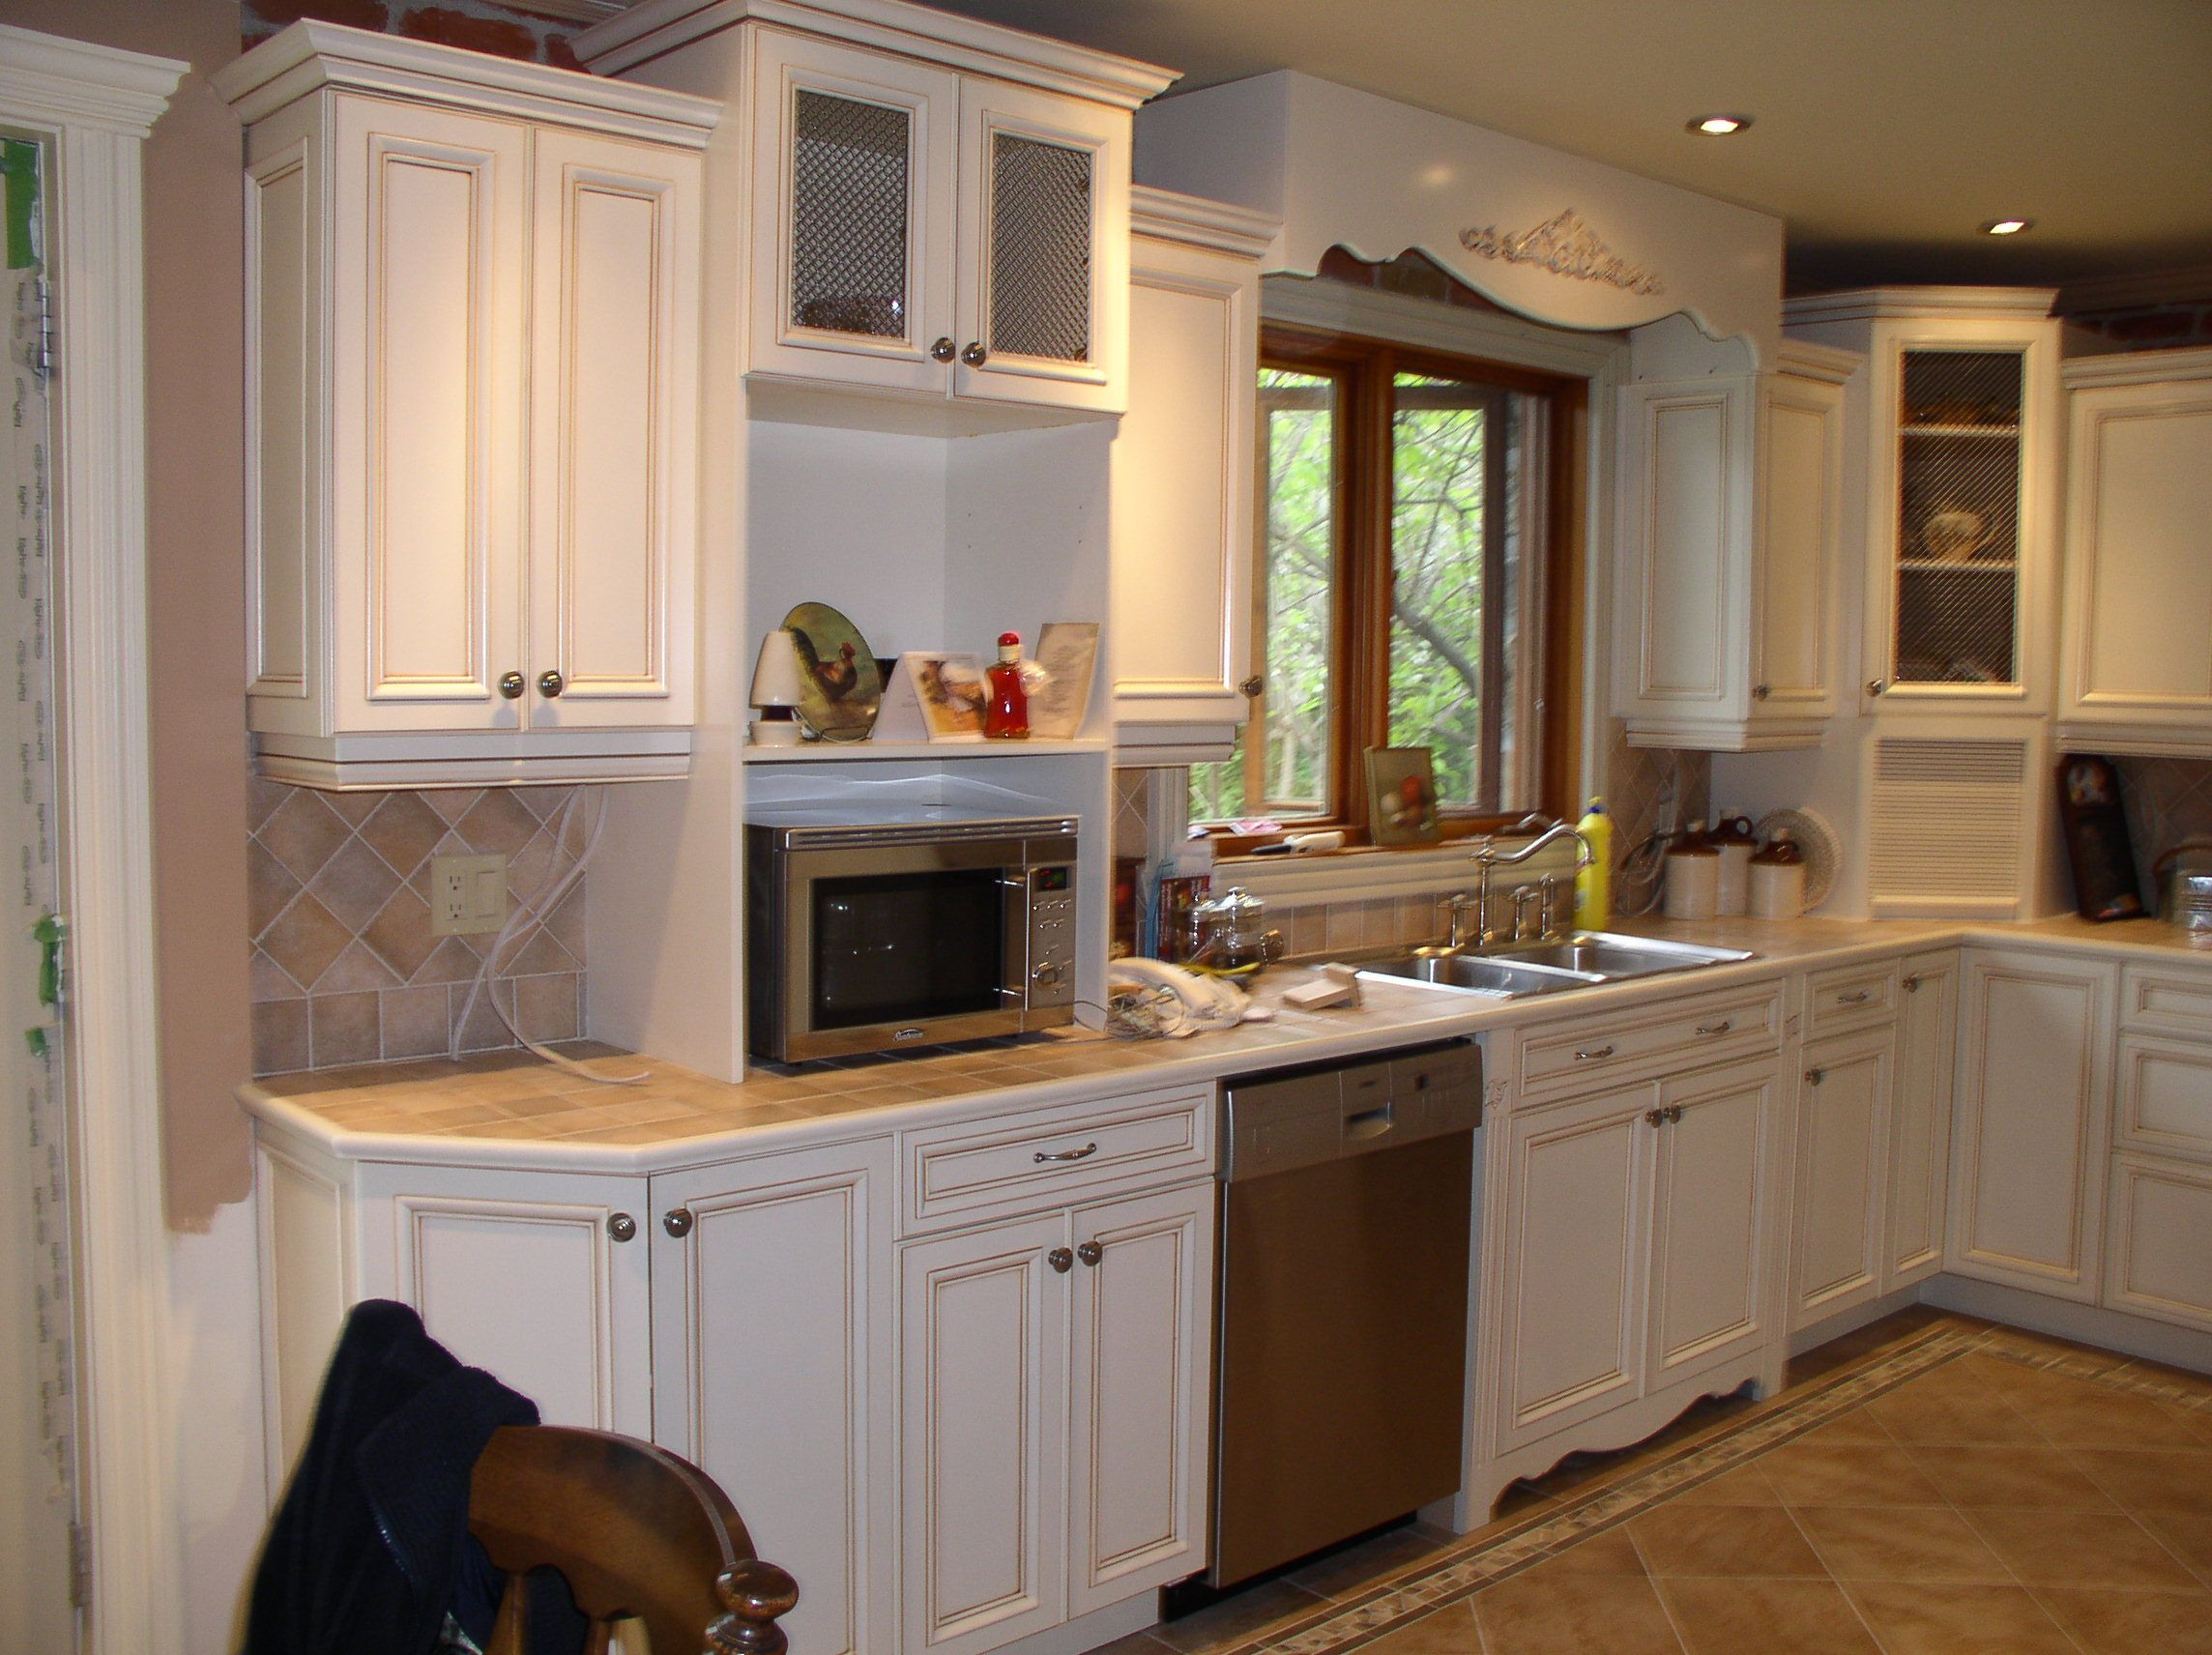 new glass replacement refacing doors veneer and kitchen cabinet lowes depot home drawer fronts